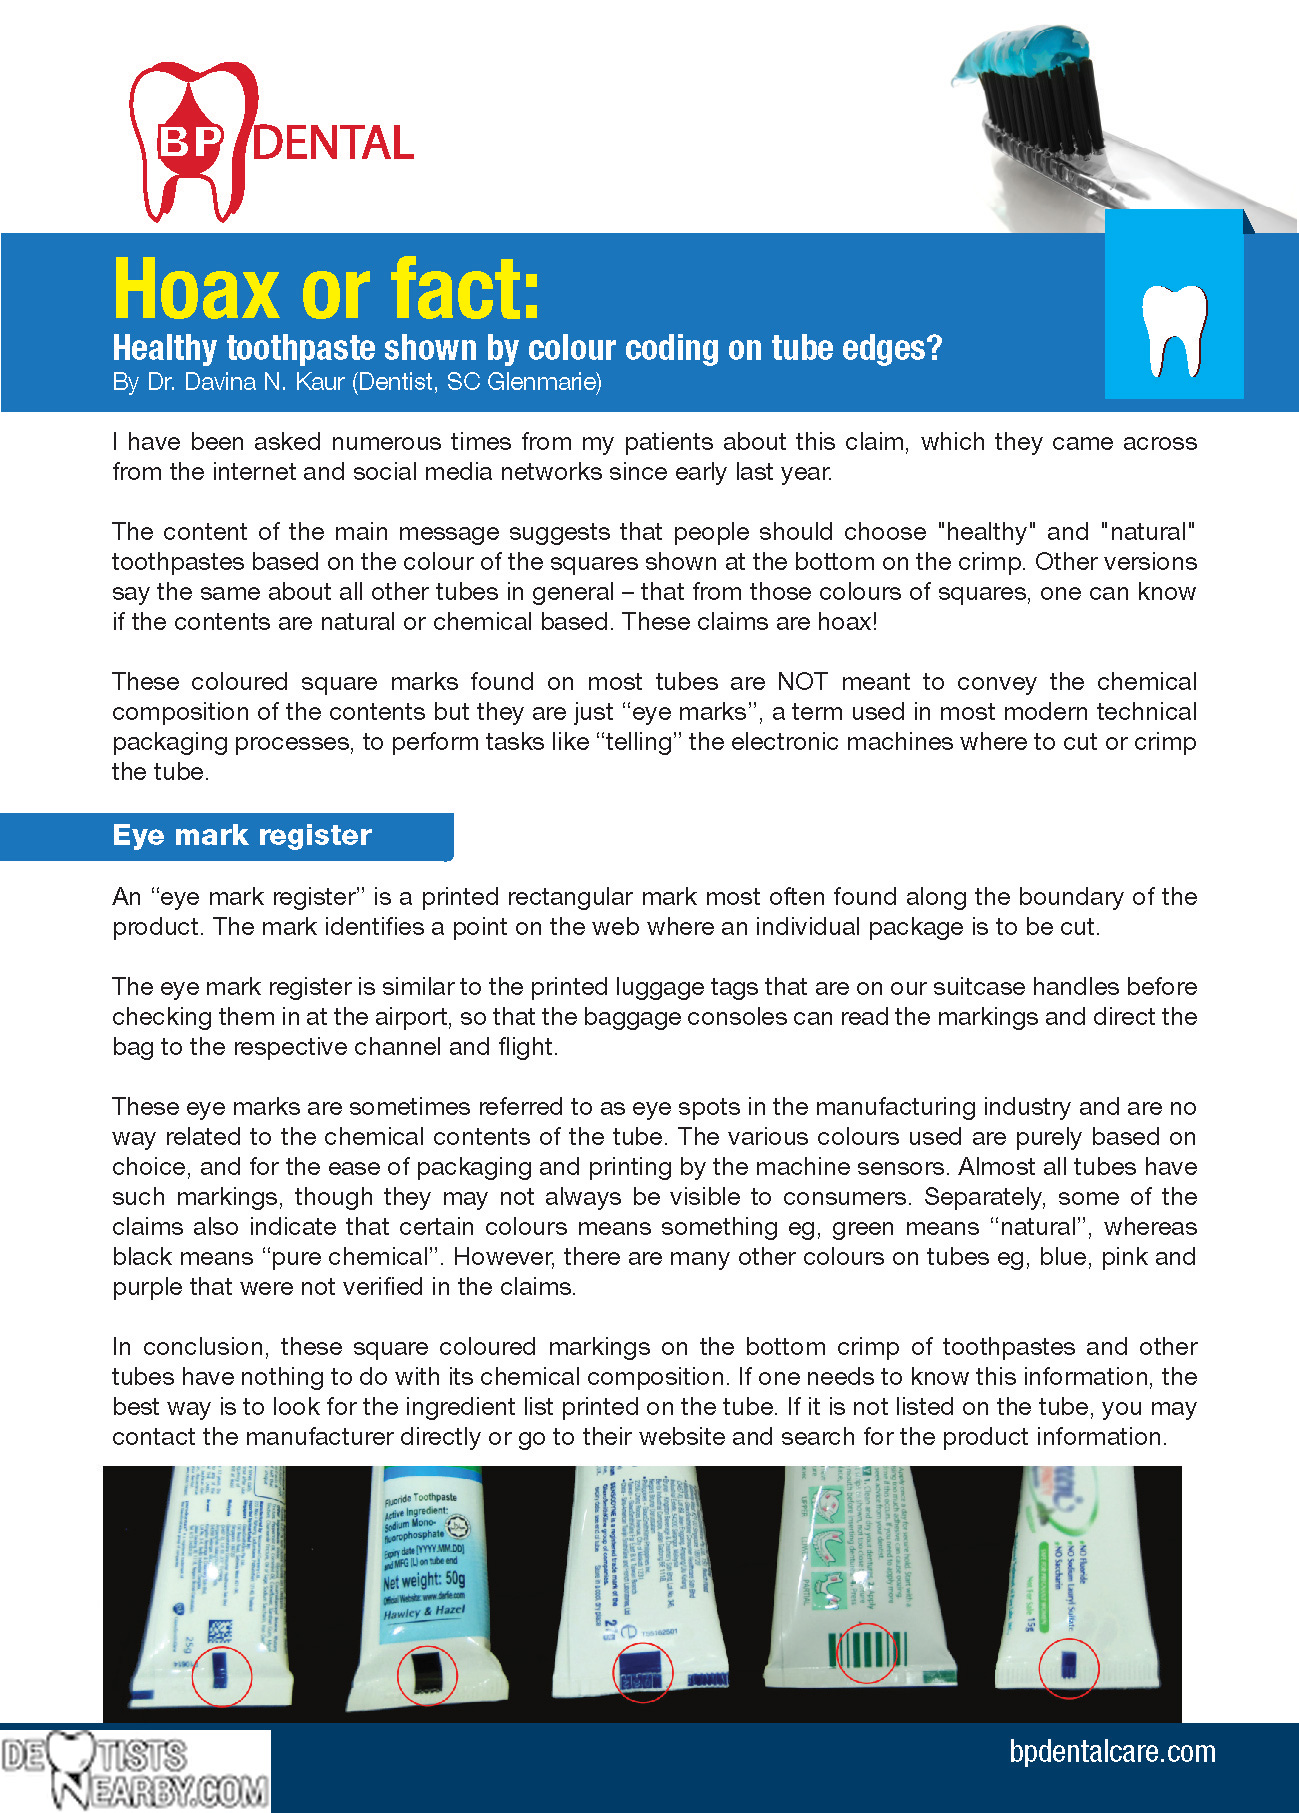 Dental-toothbrush HoaxOrFact-01